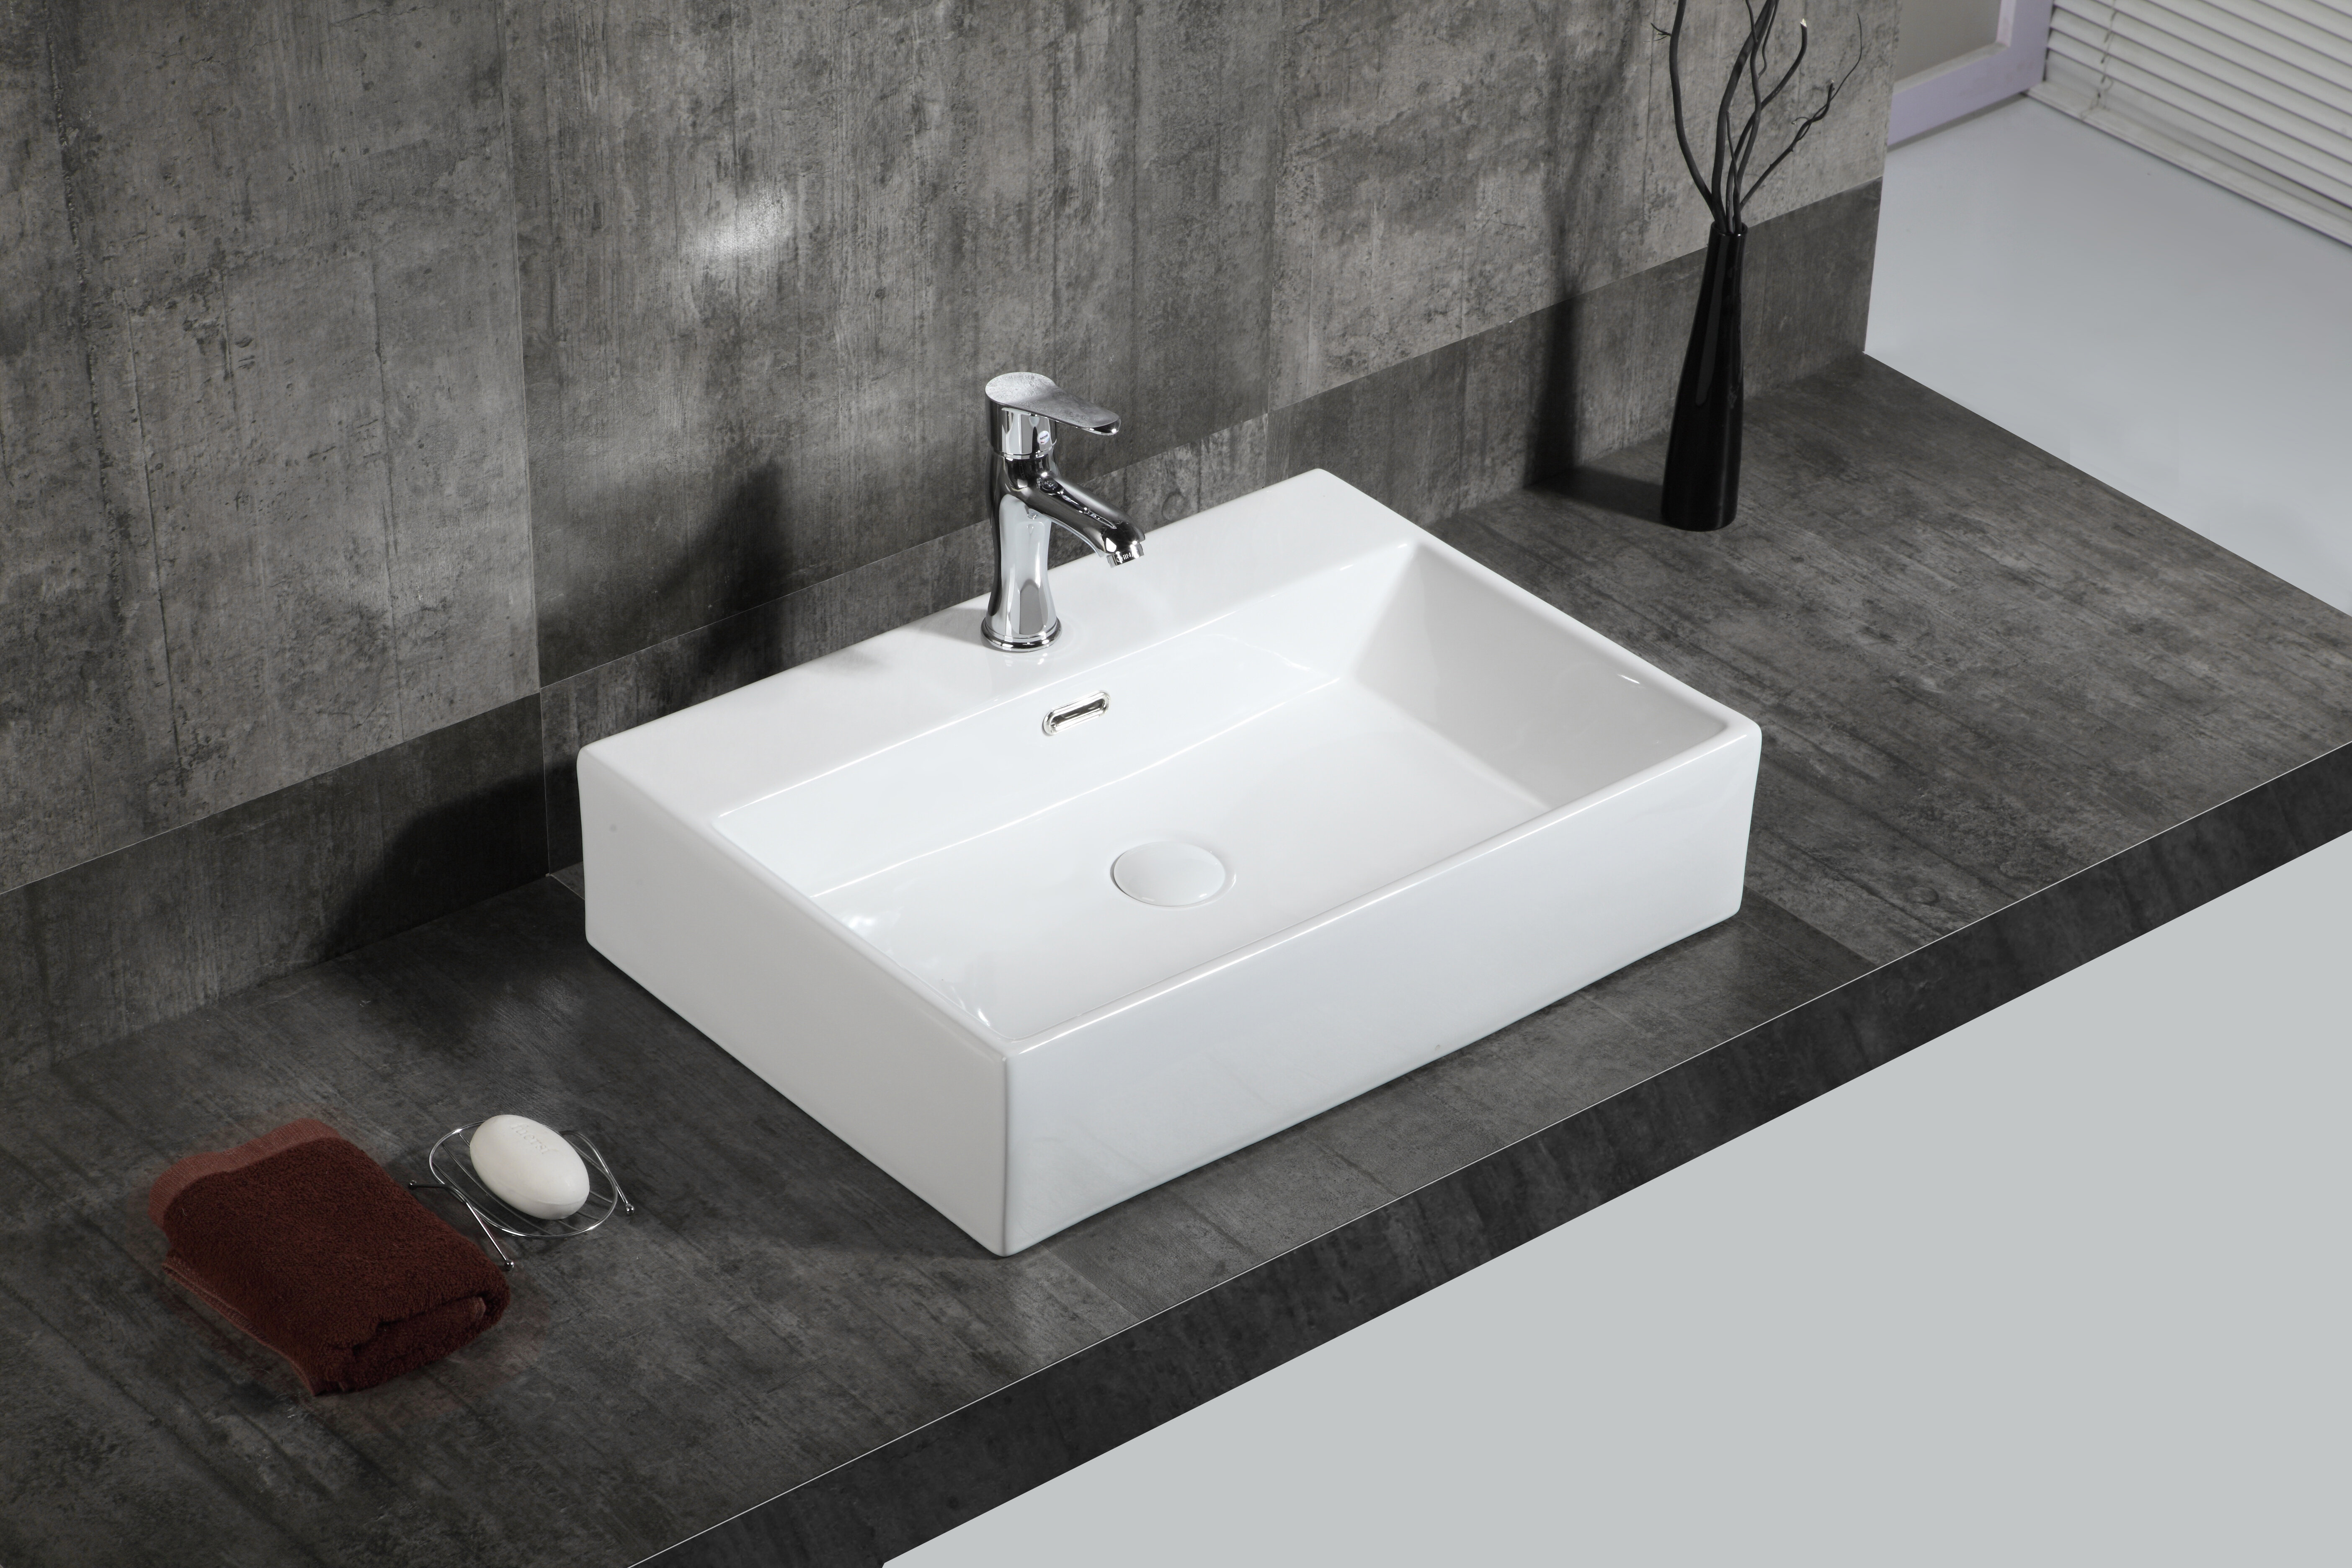 A E Bath And Shower Bow Ceramic Rectangular Vessel Bathroom Sink With Overflow Wayfair